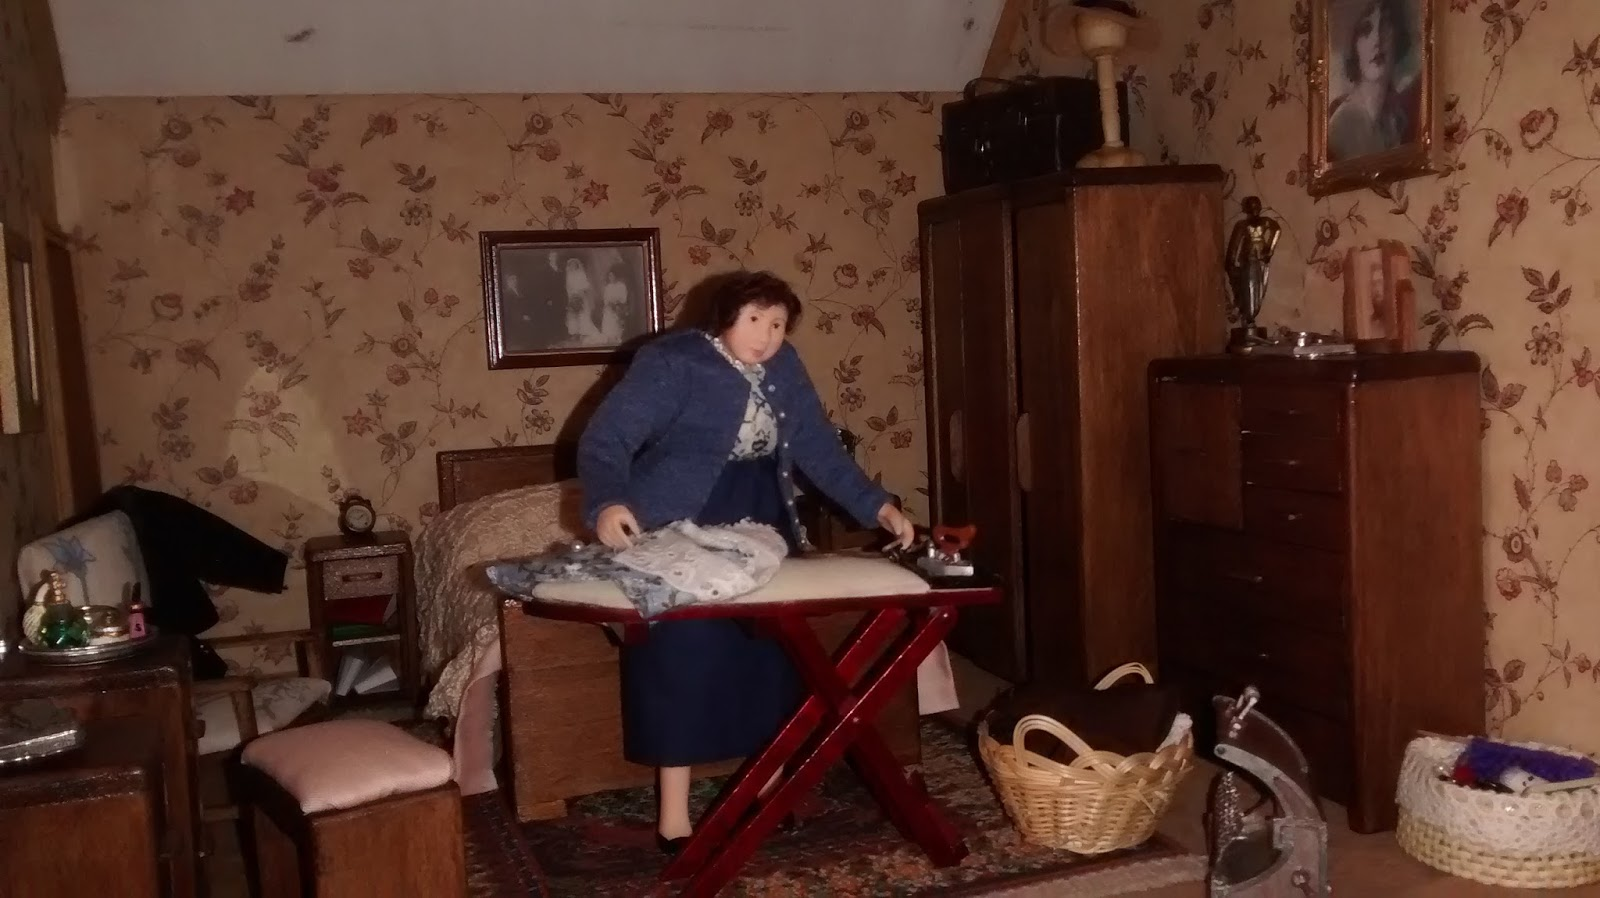 My Miniature World: The Main Bed Room in Tudor Manor